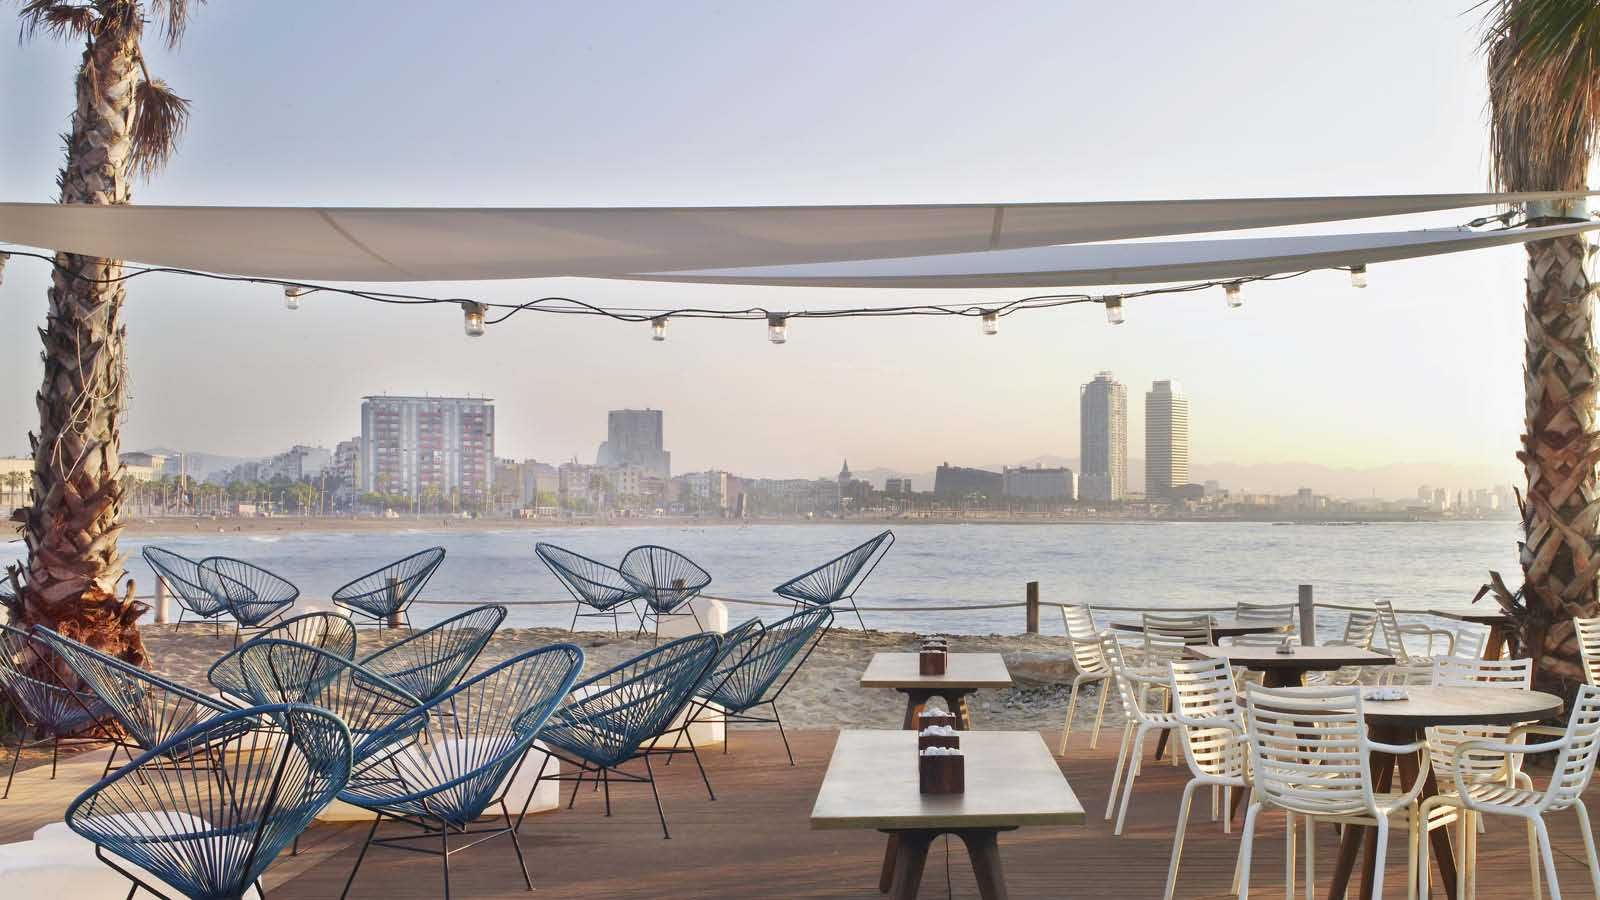 Salt Restaurant Lounge Beach Club W Barcelona Hotel Barcelona Hotels Beach Club Barcelona Beach